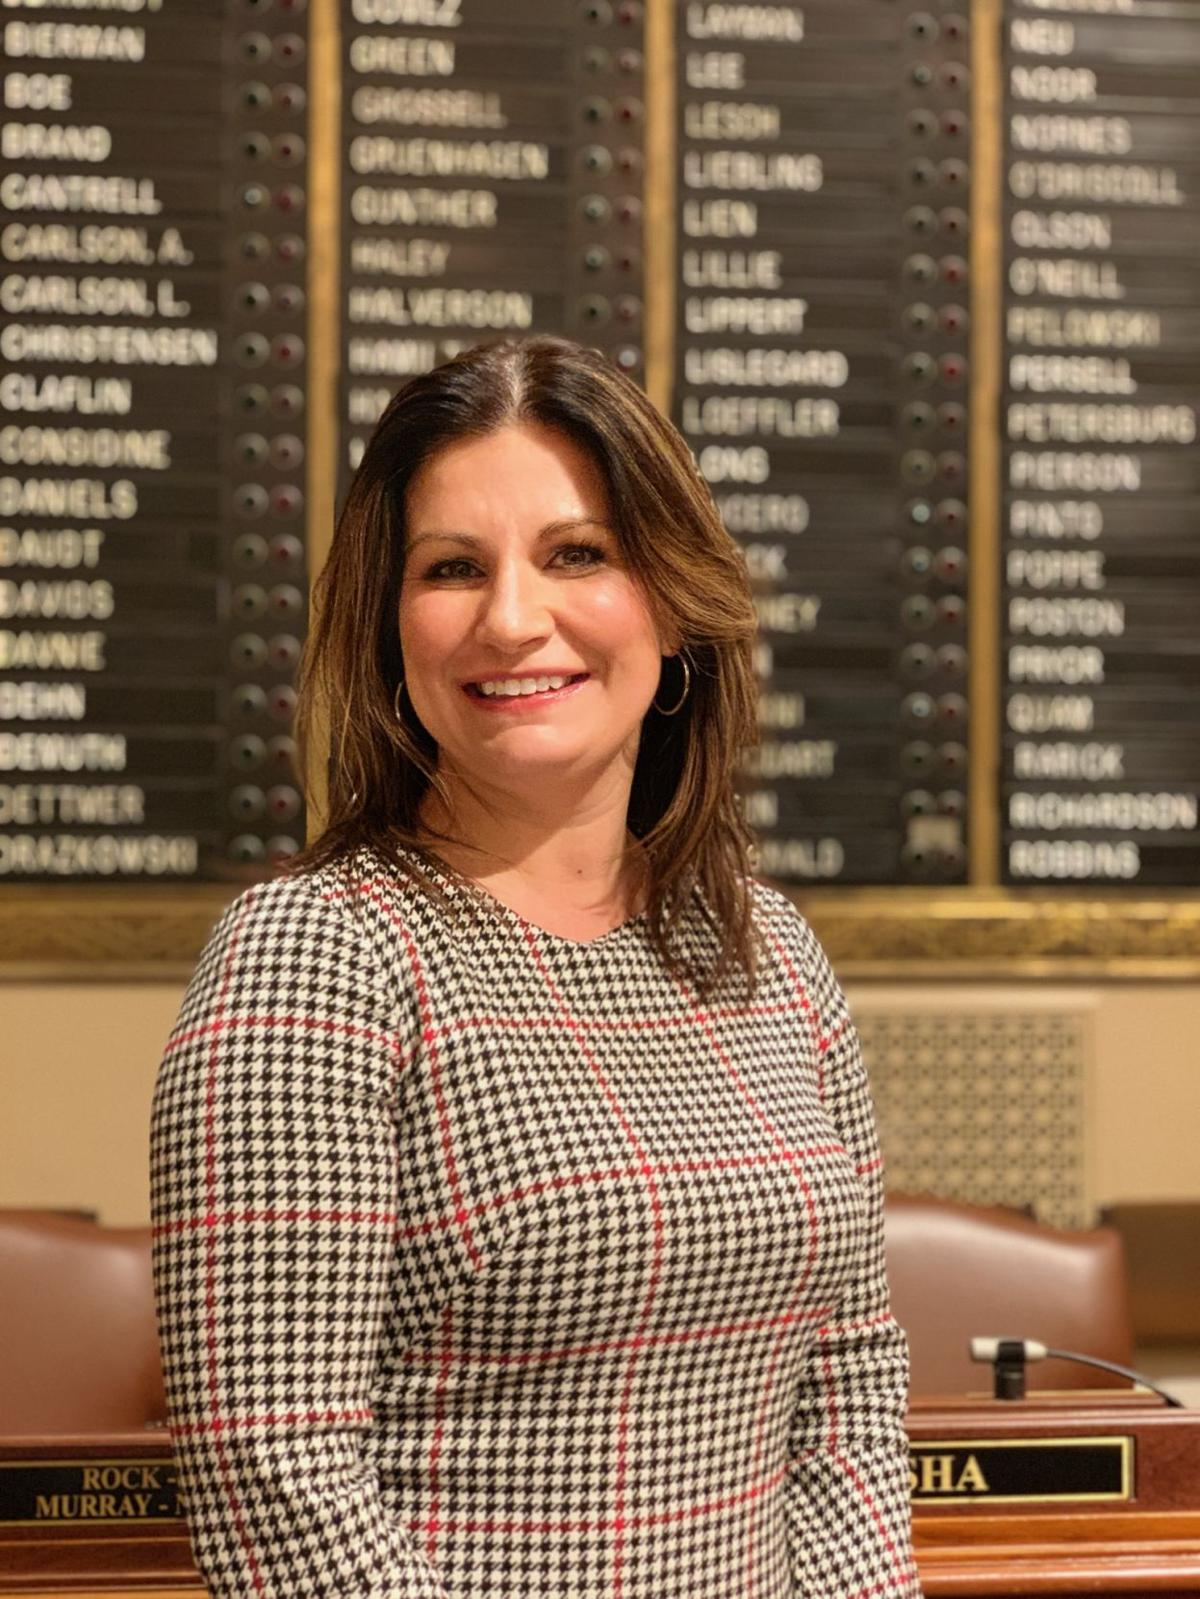 Rep. Mary Franson reacts to CCAP Fraud Report